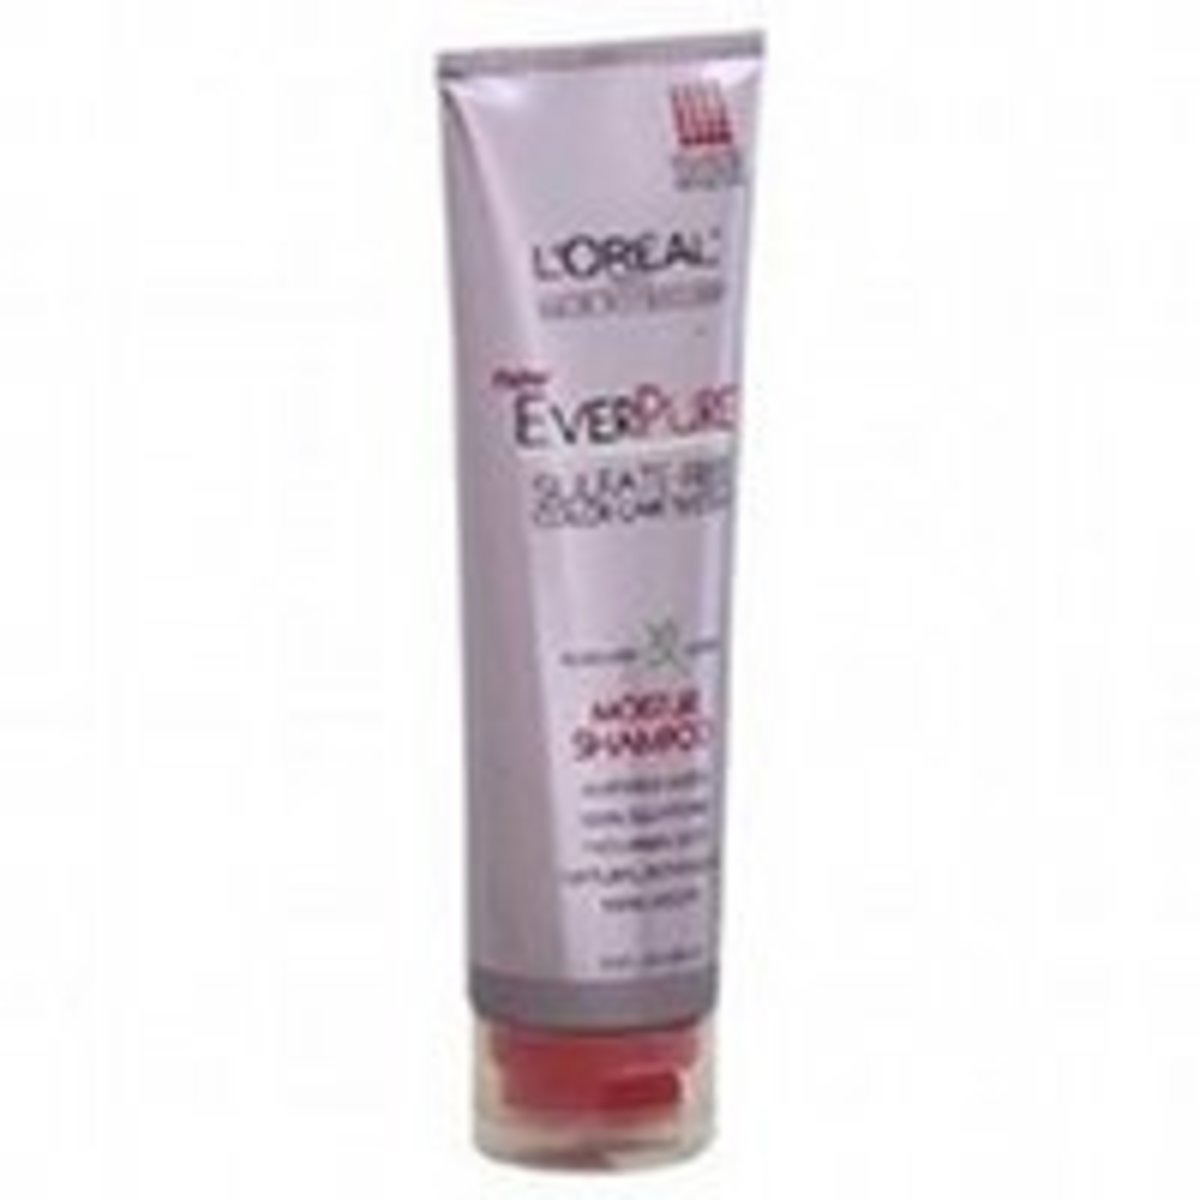 products-loreal-everpure-0309